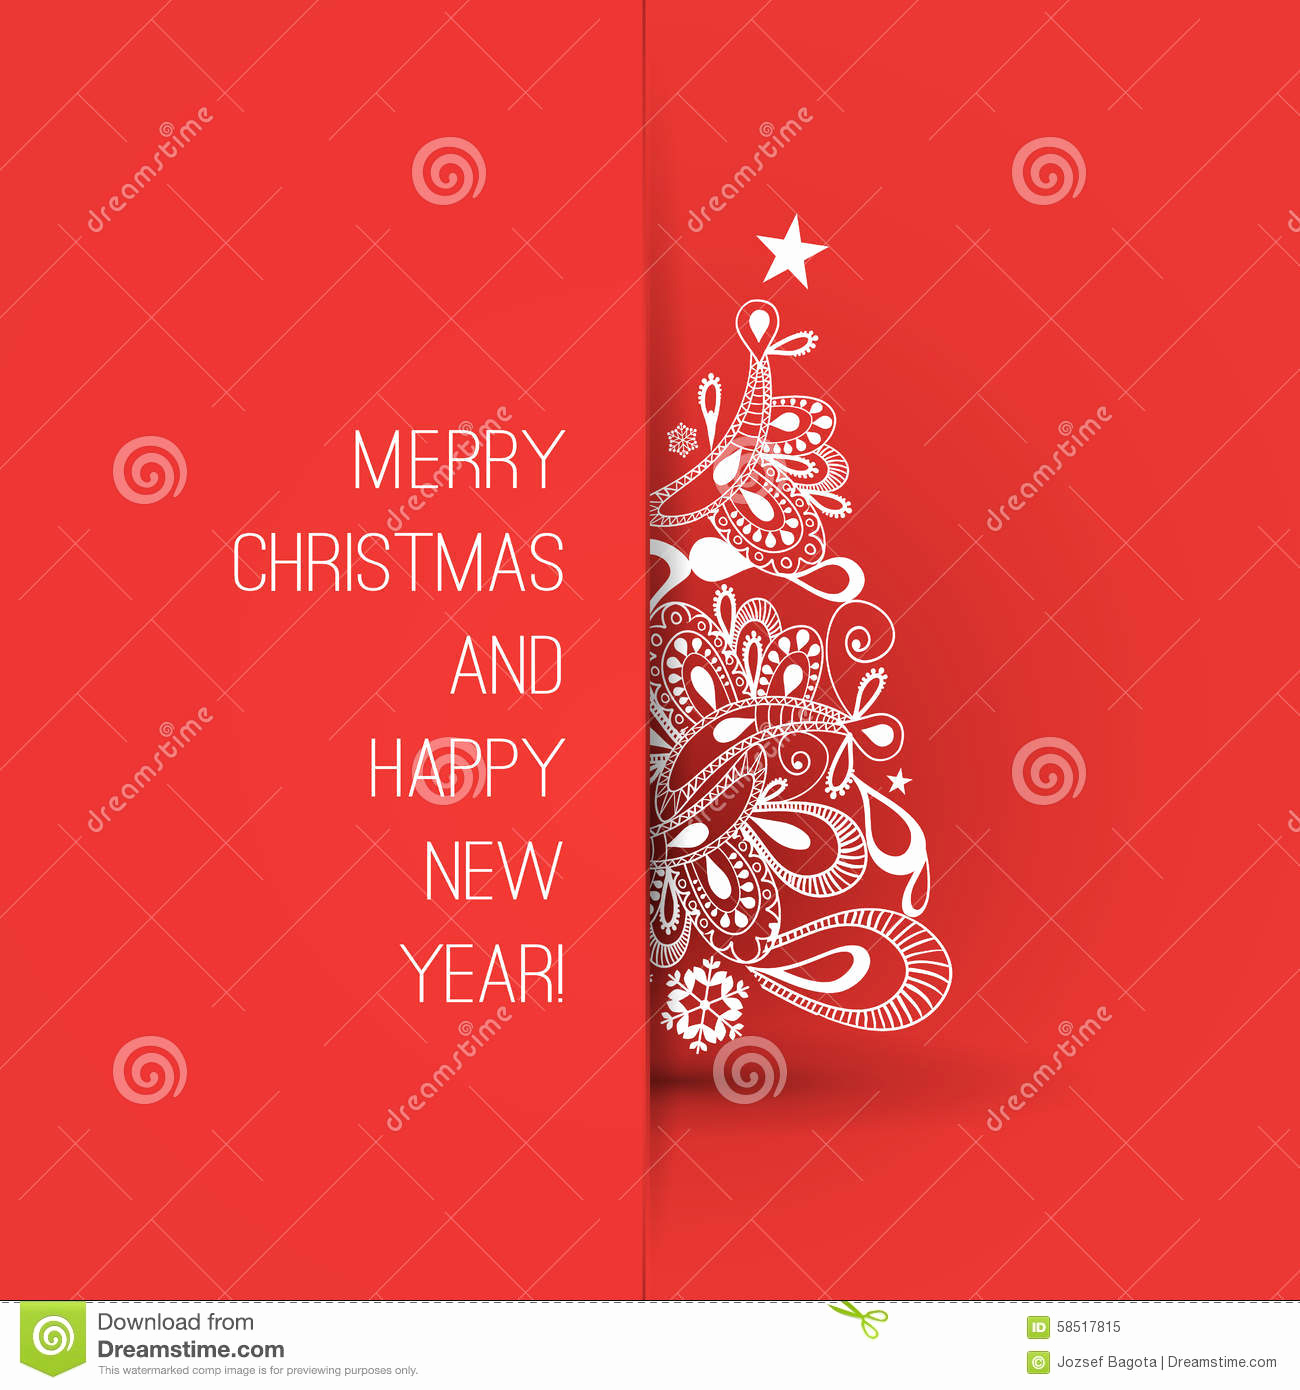 New Year Card Template Fresh Merry Christmas and Happy New Year Greeting Card Creative